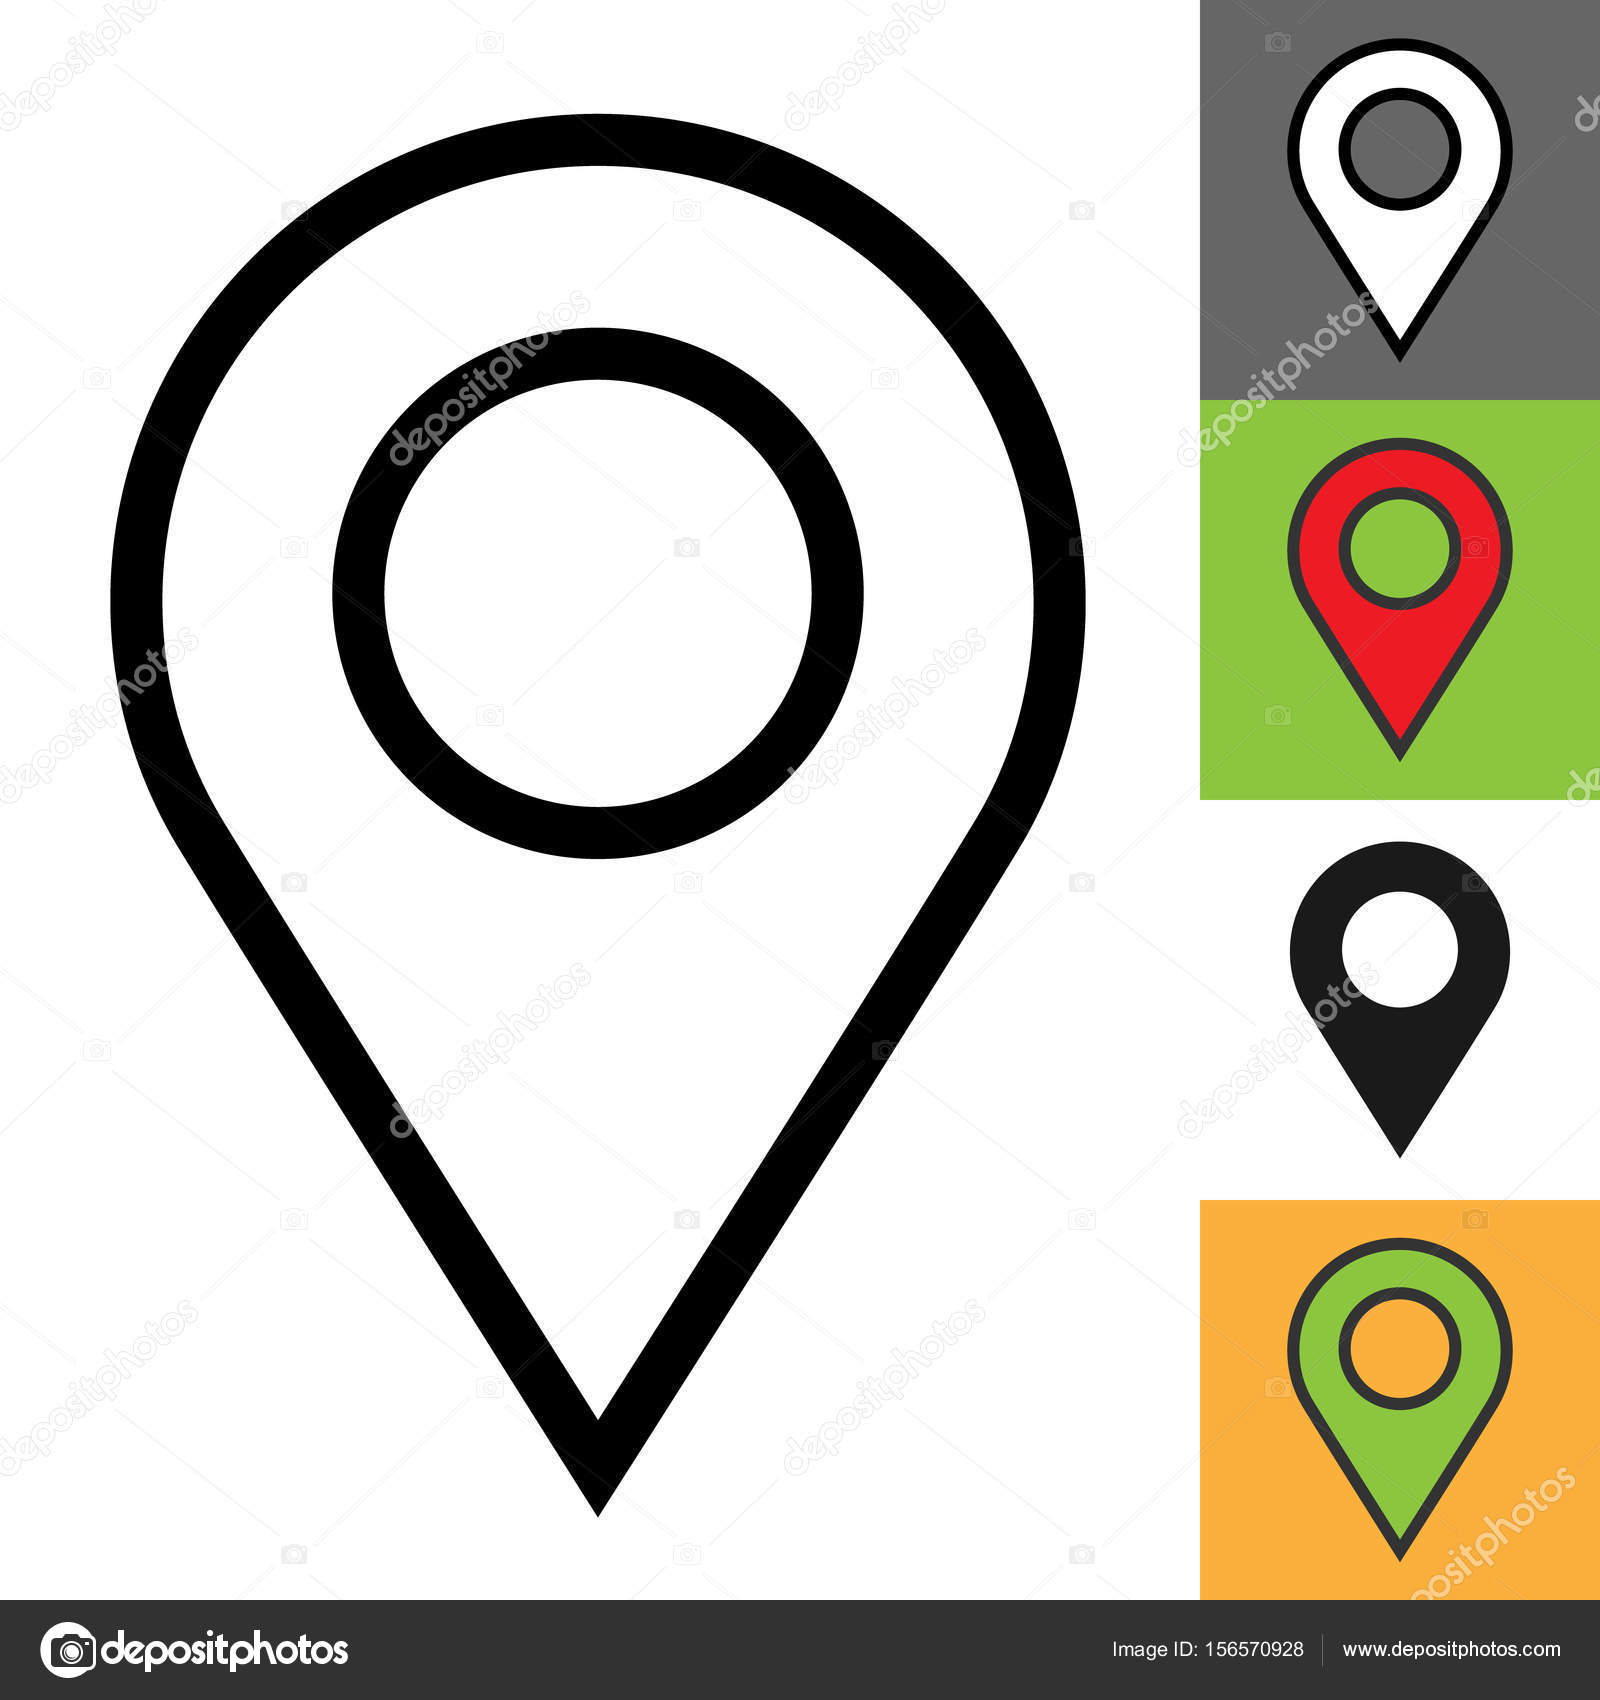 Location pin icon Simple outline location pin vector icon on white